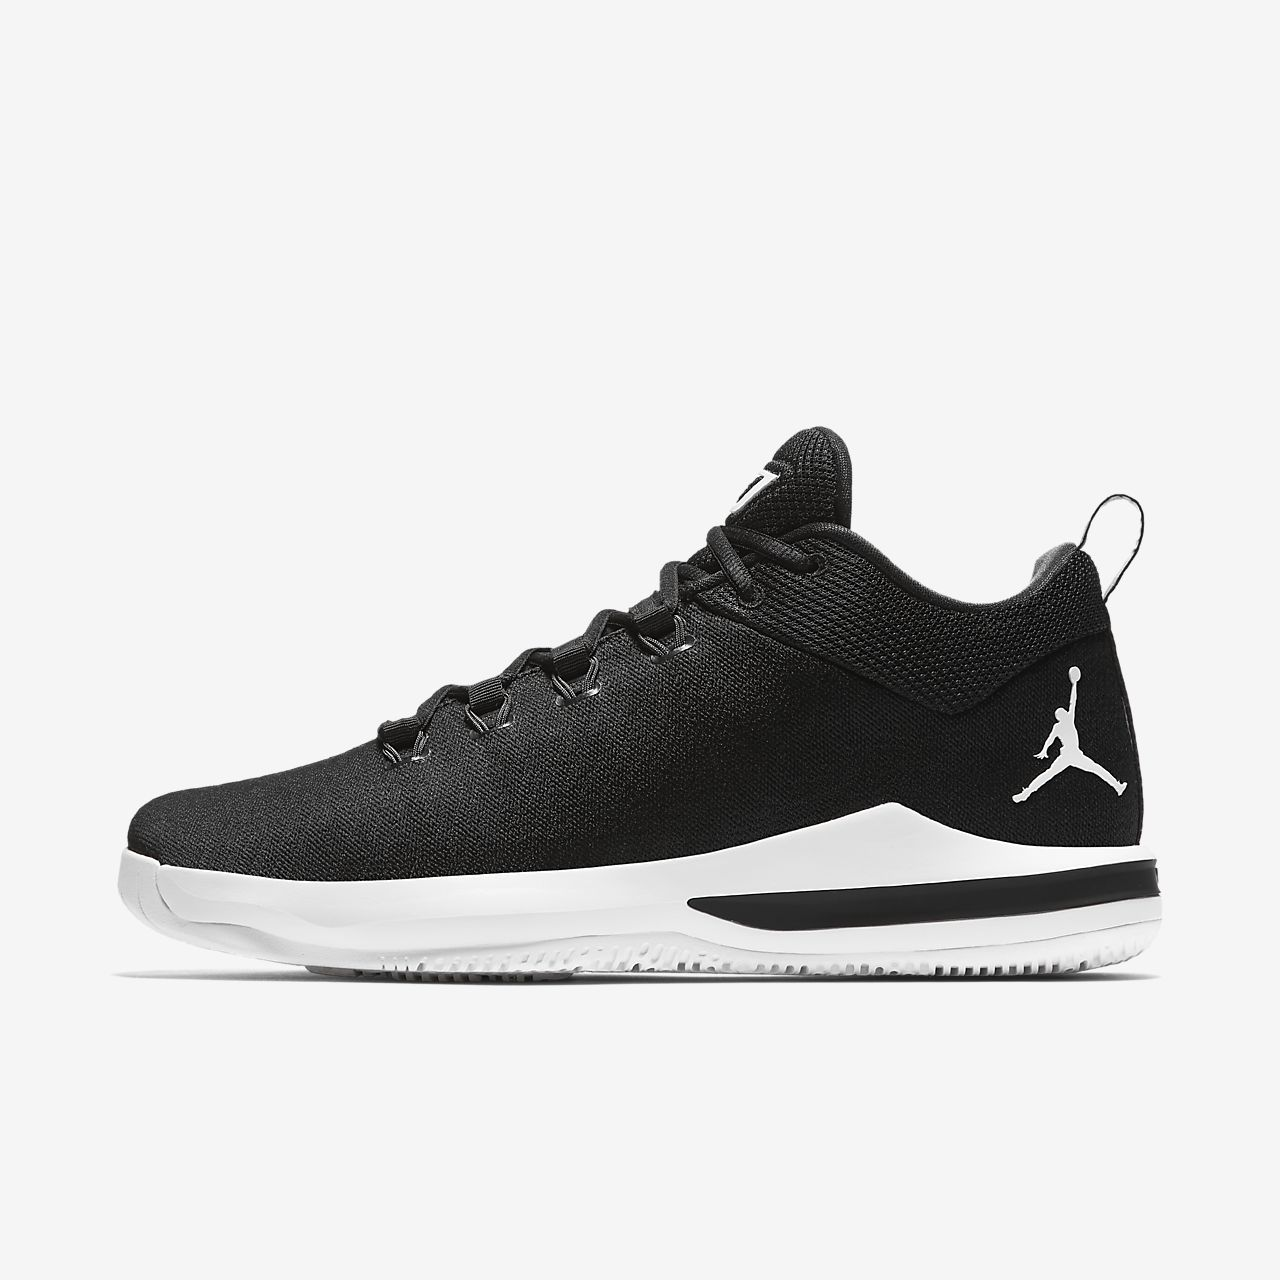 X AE Men's Basketball Shoe Jordan CP3.X AE Men's Basketball Shoe